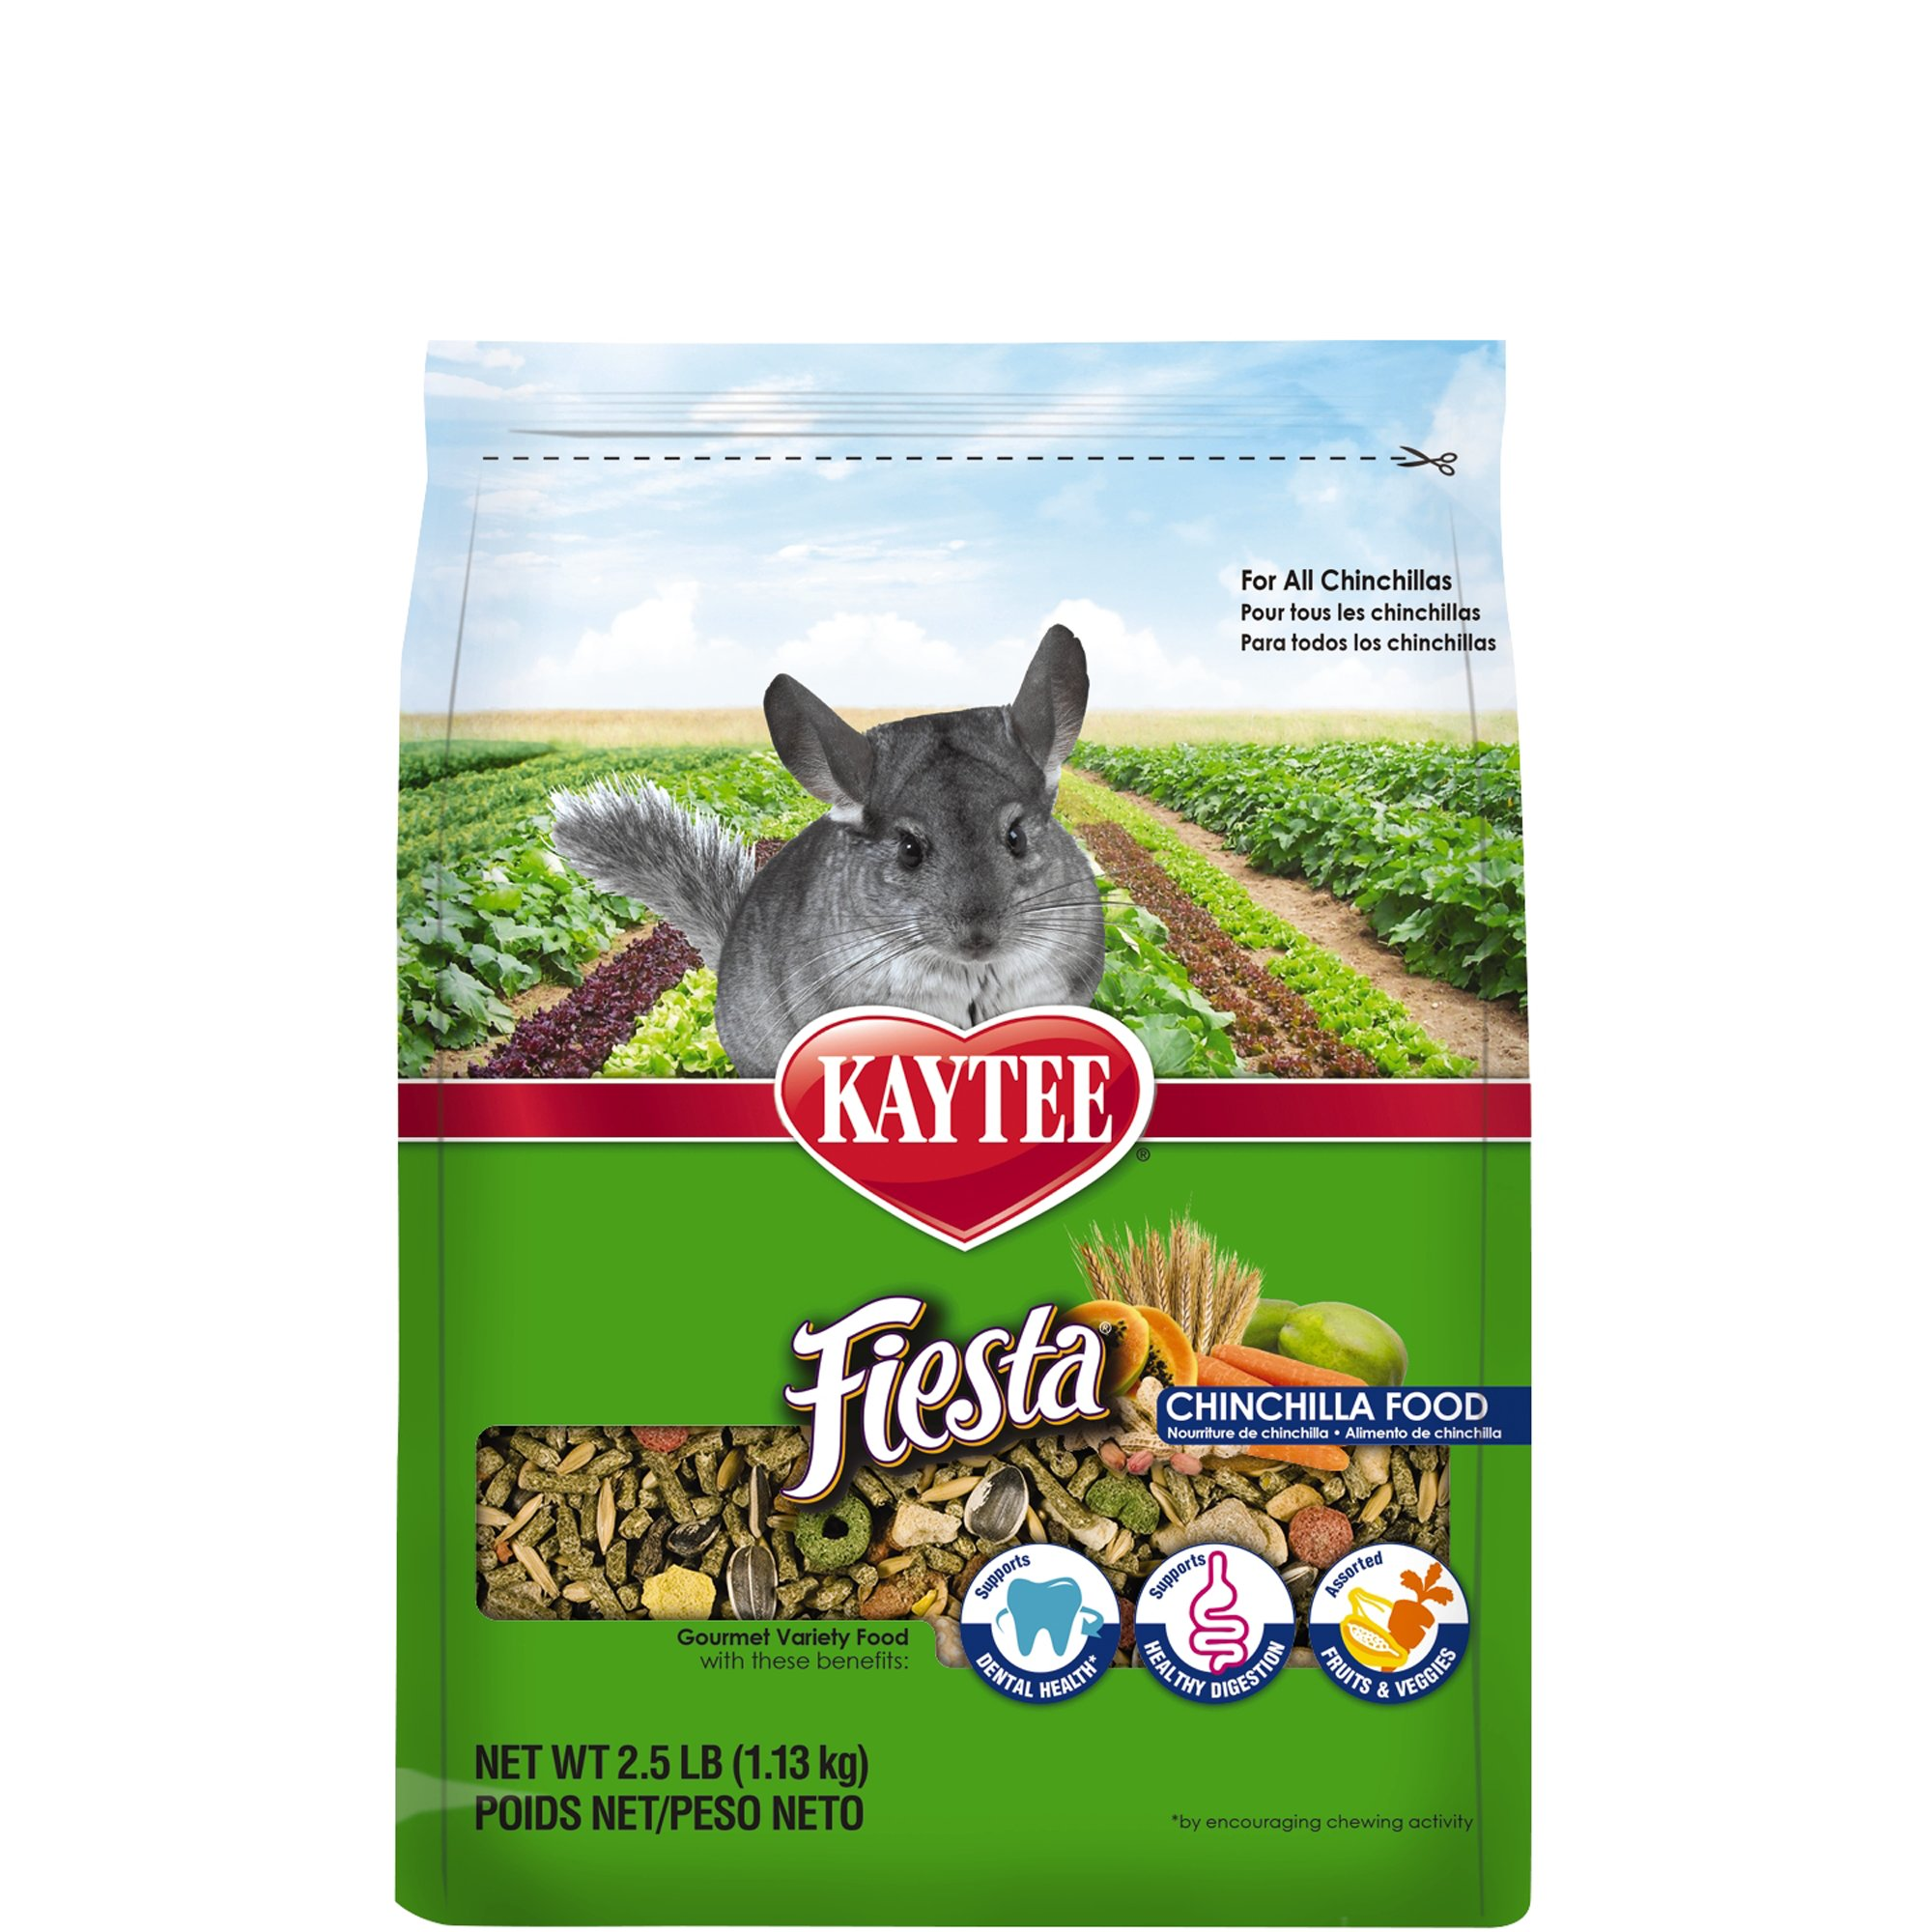 Kaytee Fiesta Food for Chinchillas